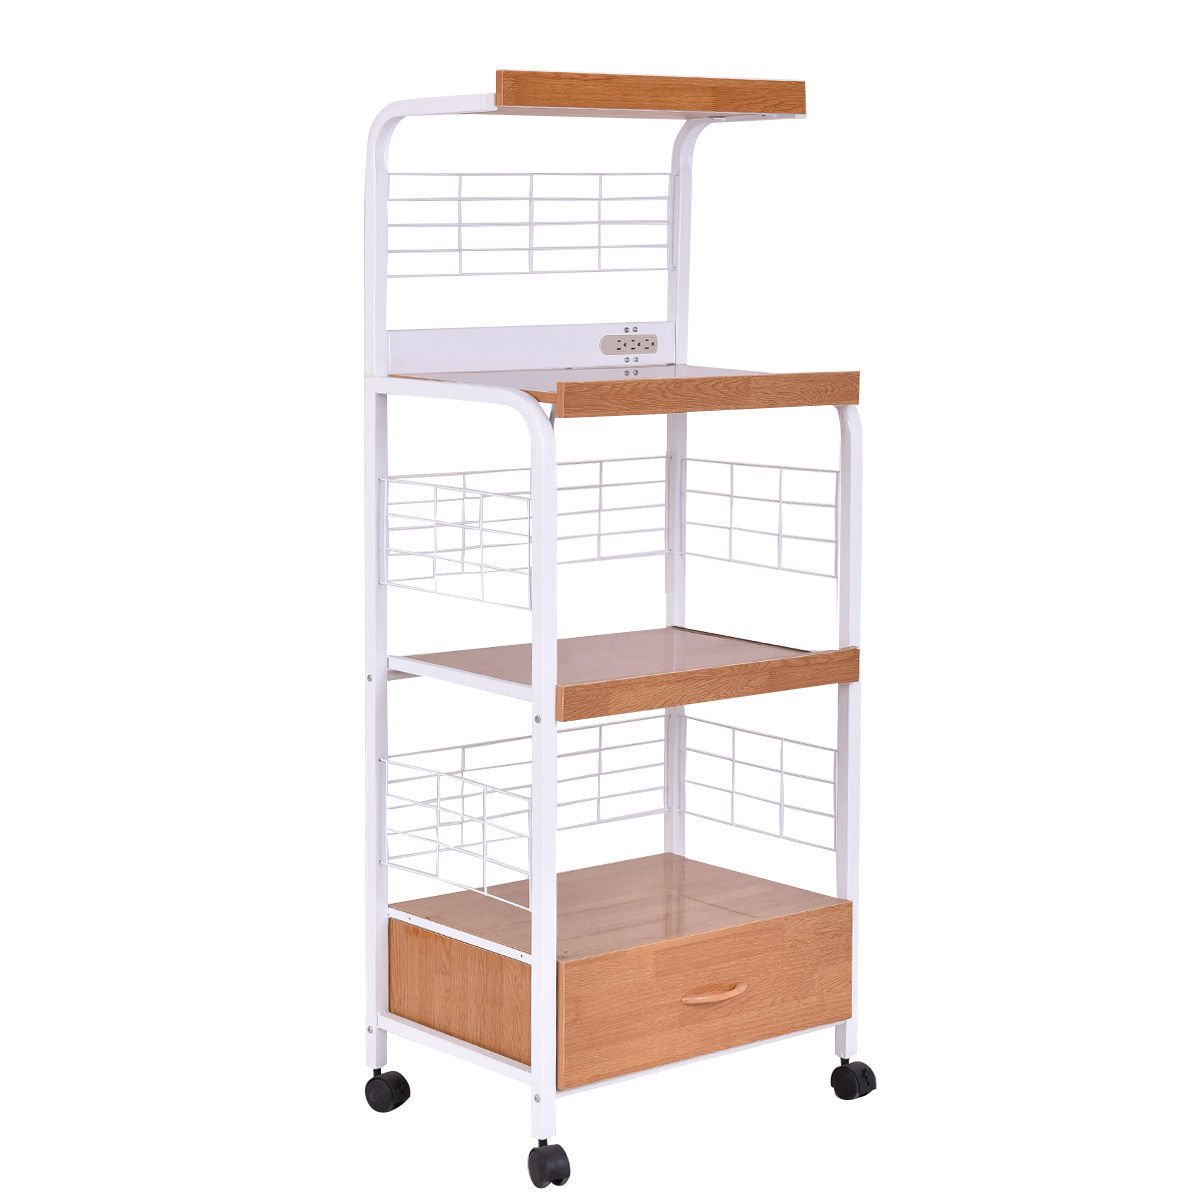 62'' Bakers Rack portable Microwave Stand Rolling Kitchen Storage Cart Electric Outlet